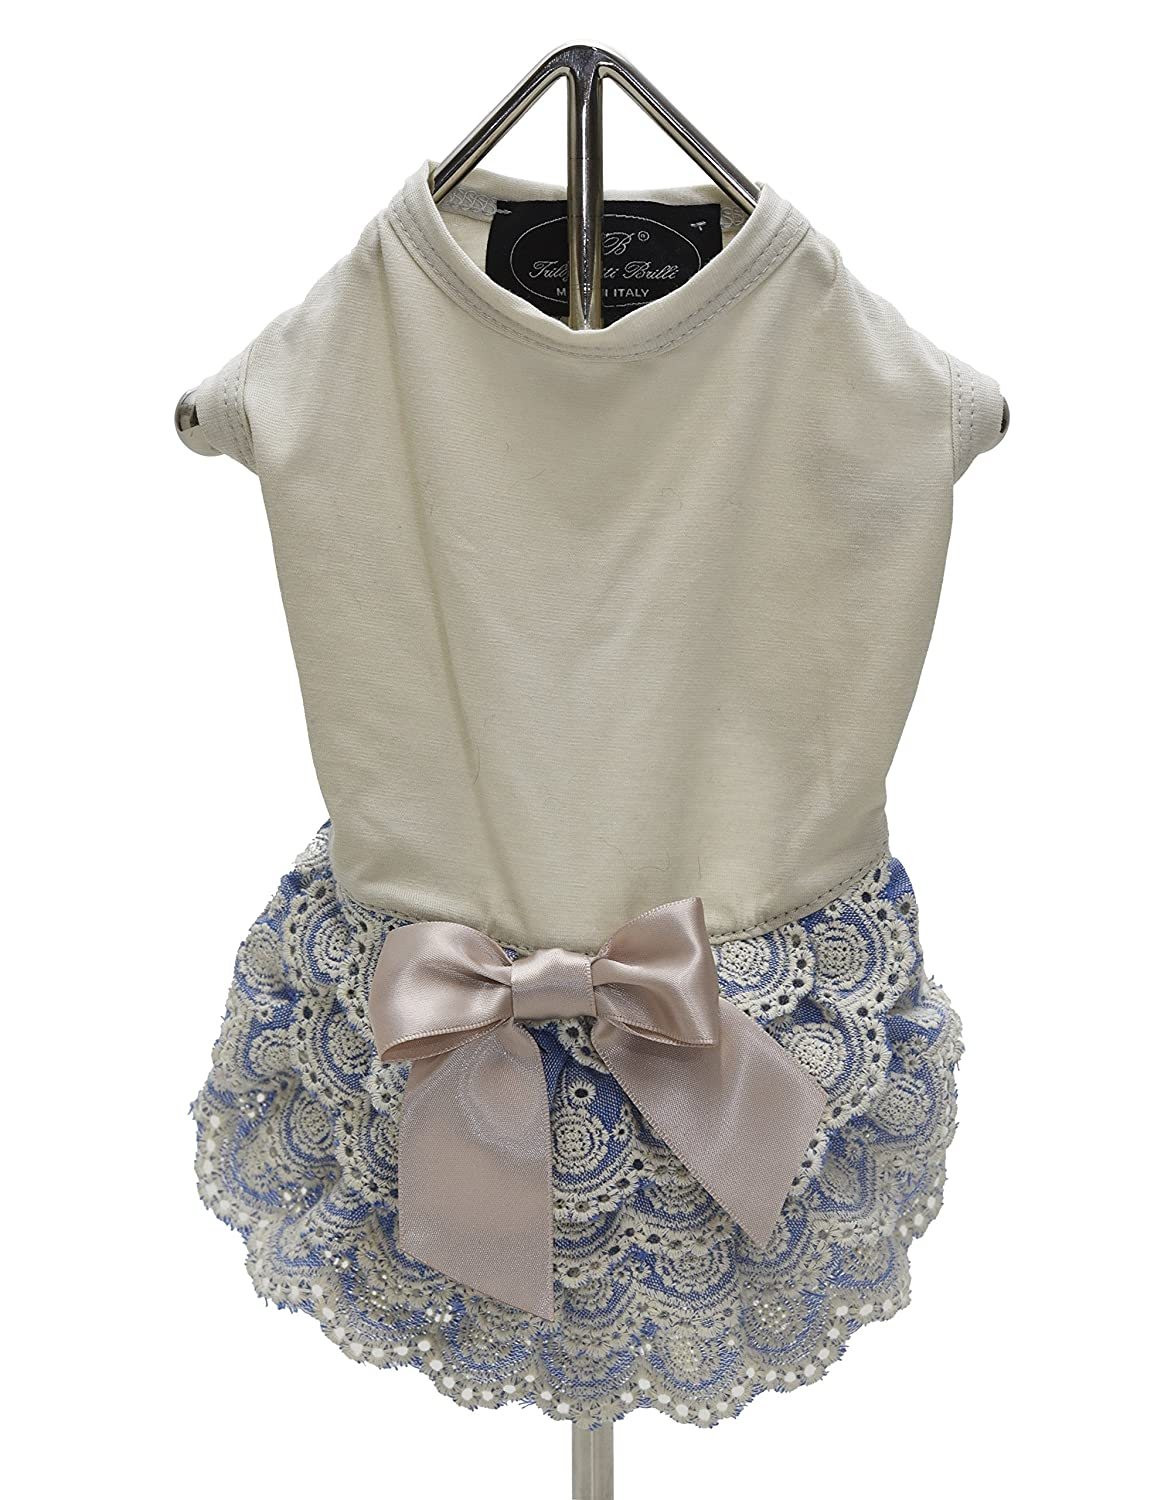 Beige Medium Beige Medium Trilly tutti Brilli Petra Dress with Lace and Bow for Dogs, Medium, Beige